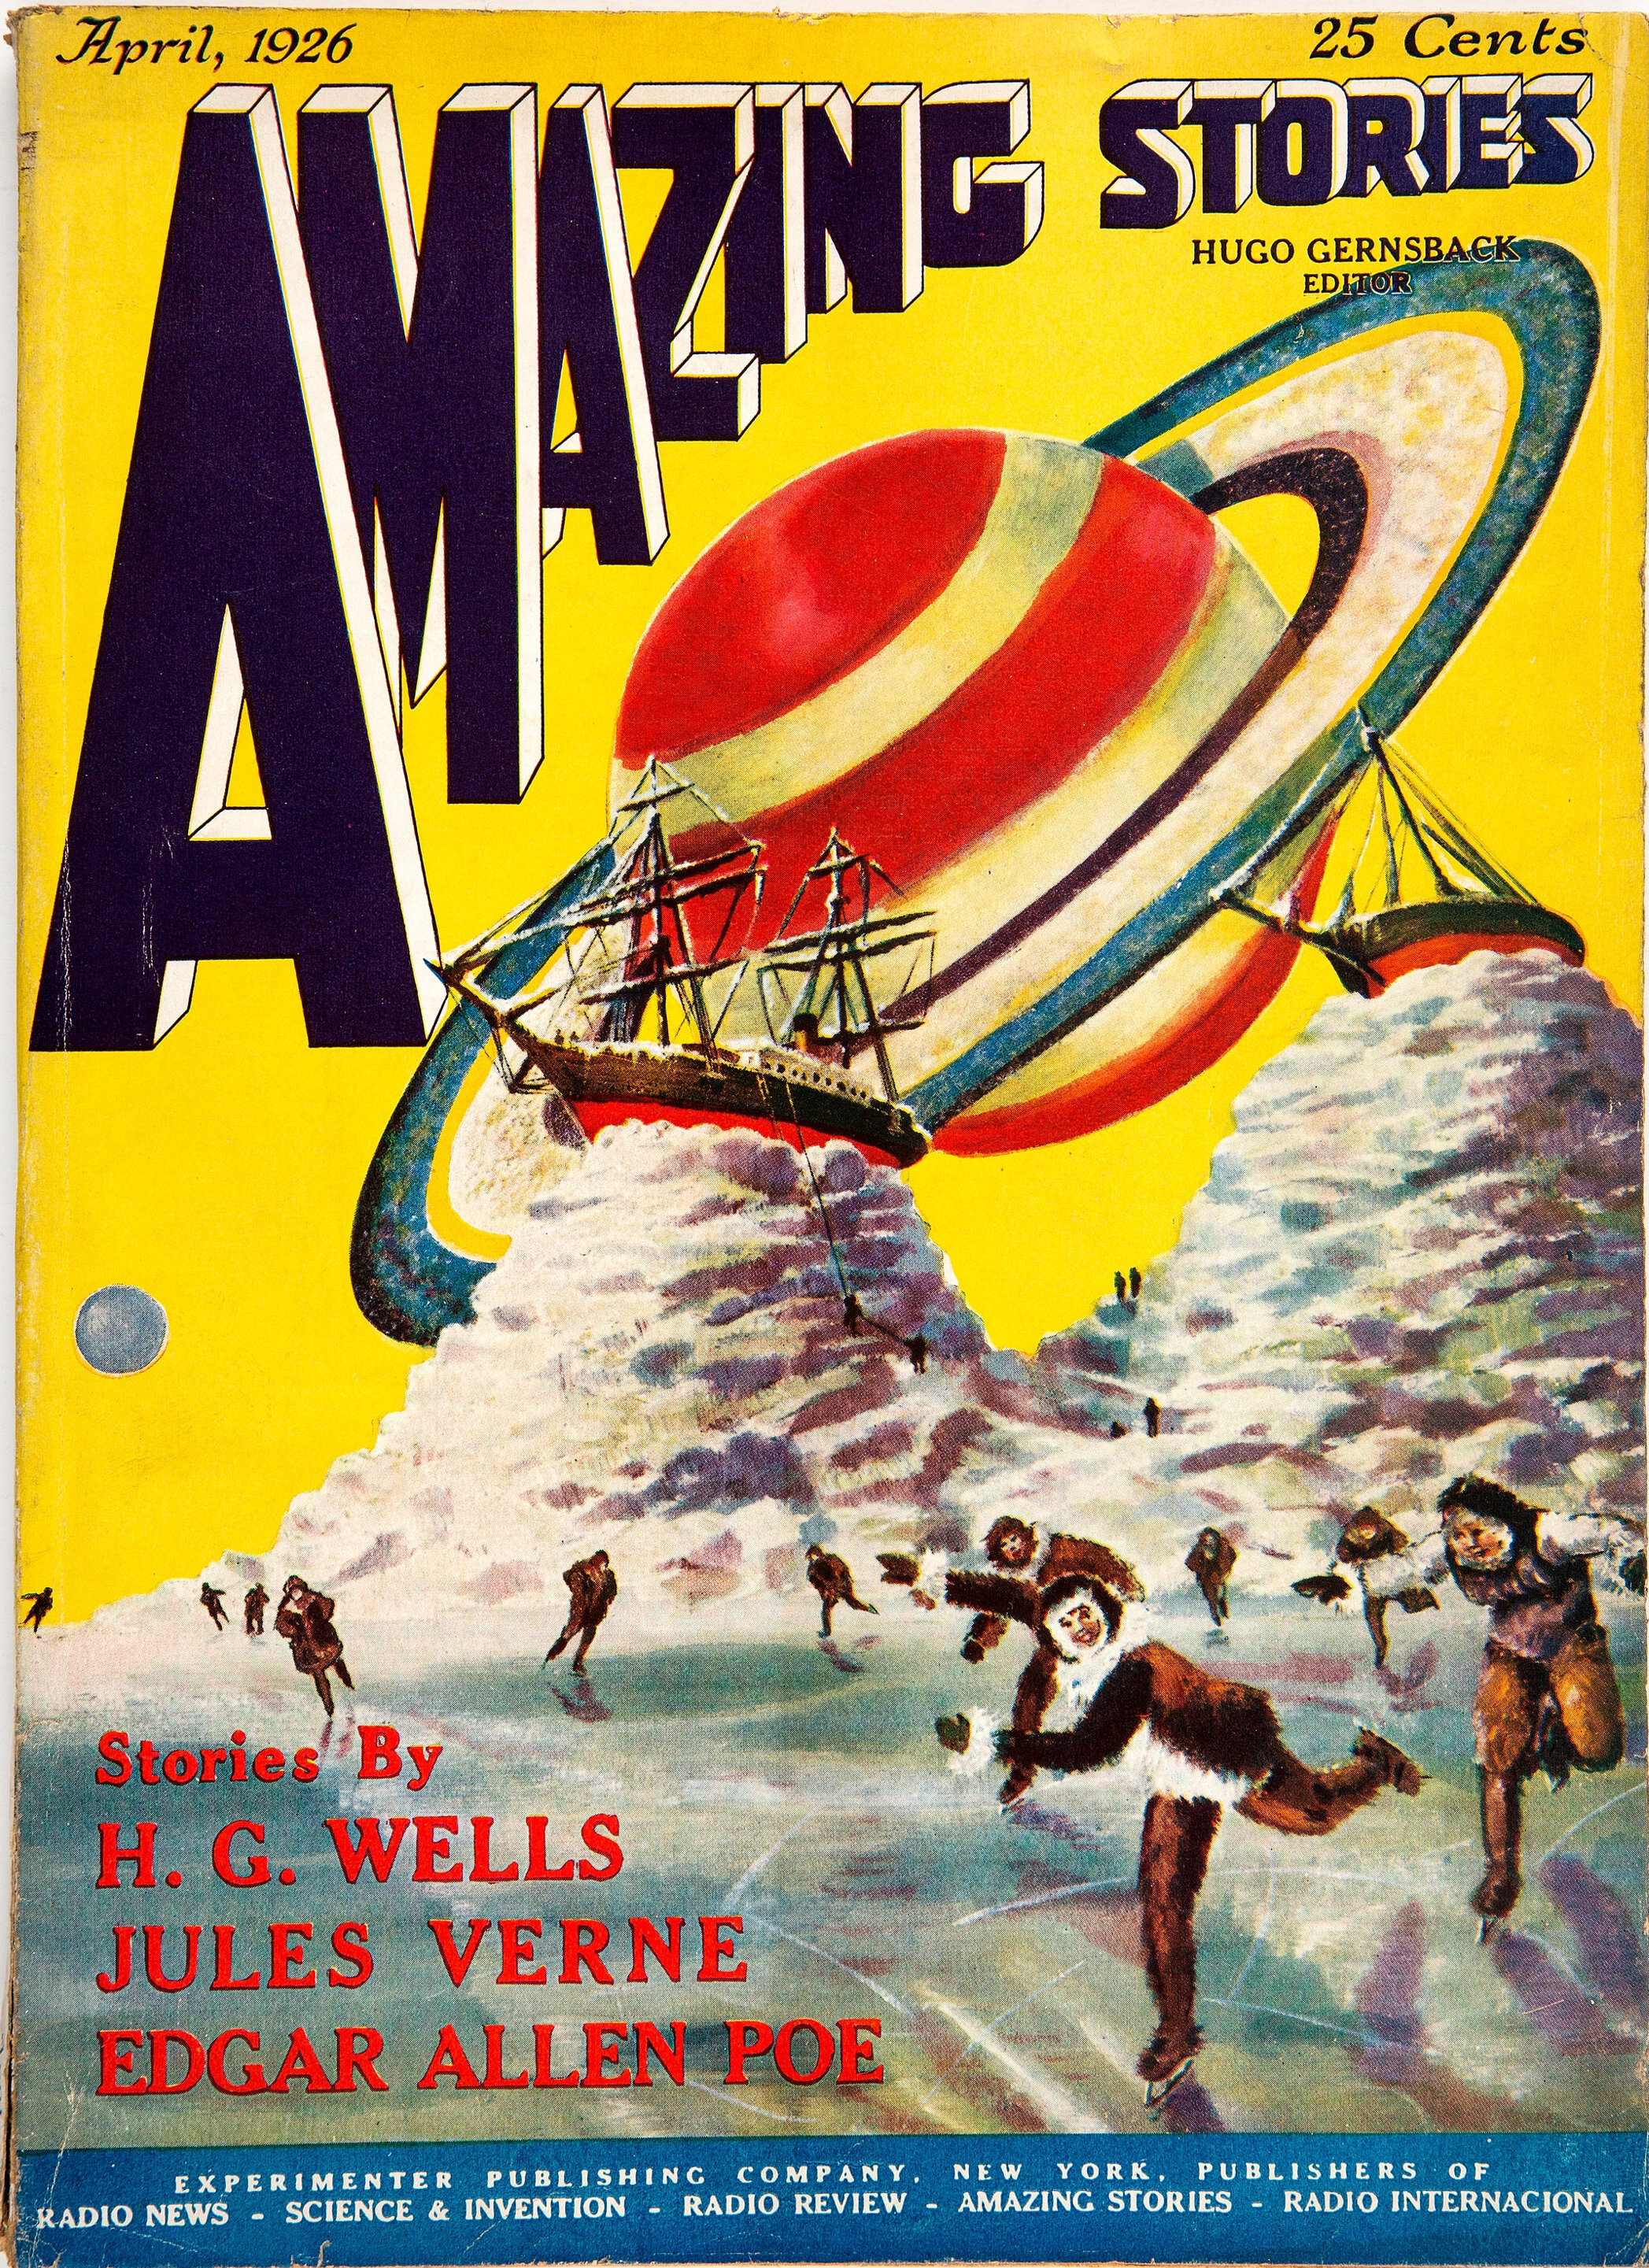 History Of US Science Fiction And Fantasy Magazines To